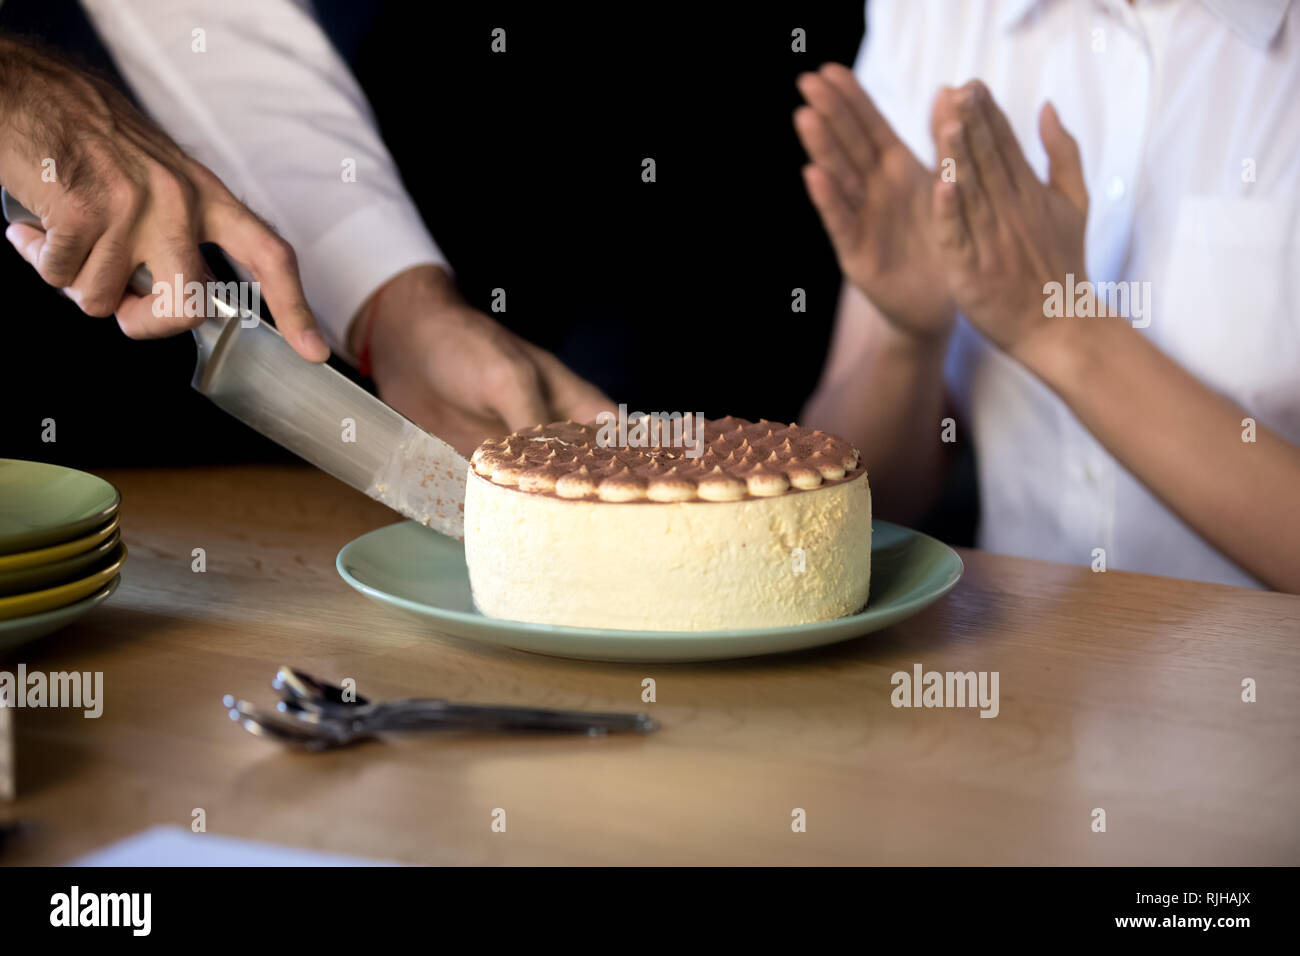 Close Up Of Man Cutting Birthday Cake In Office